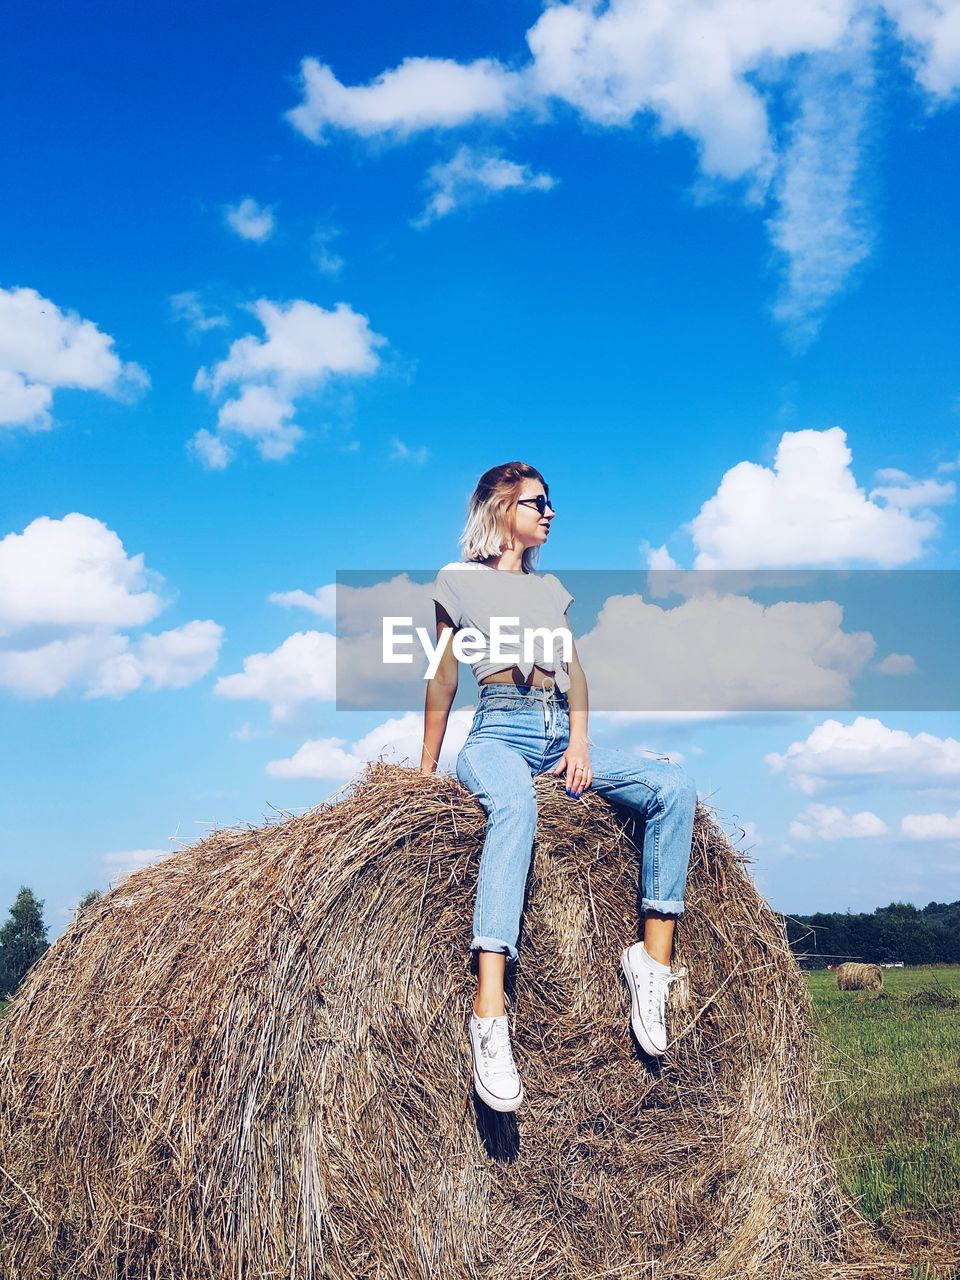 Full Length Of Young Woman Sitting On Hay Bale In Field